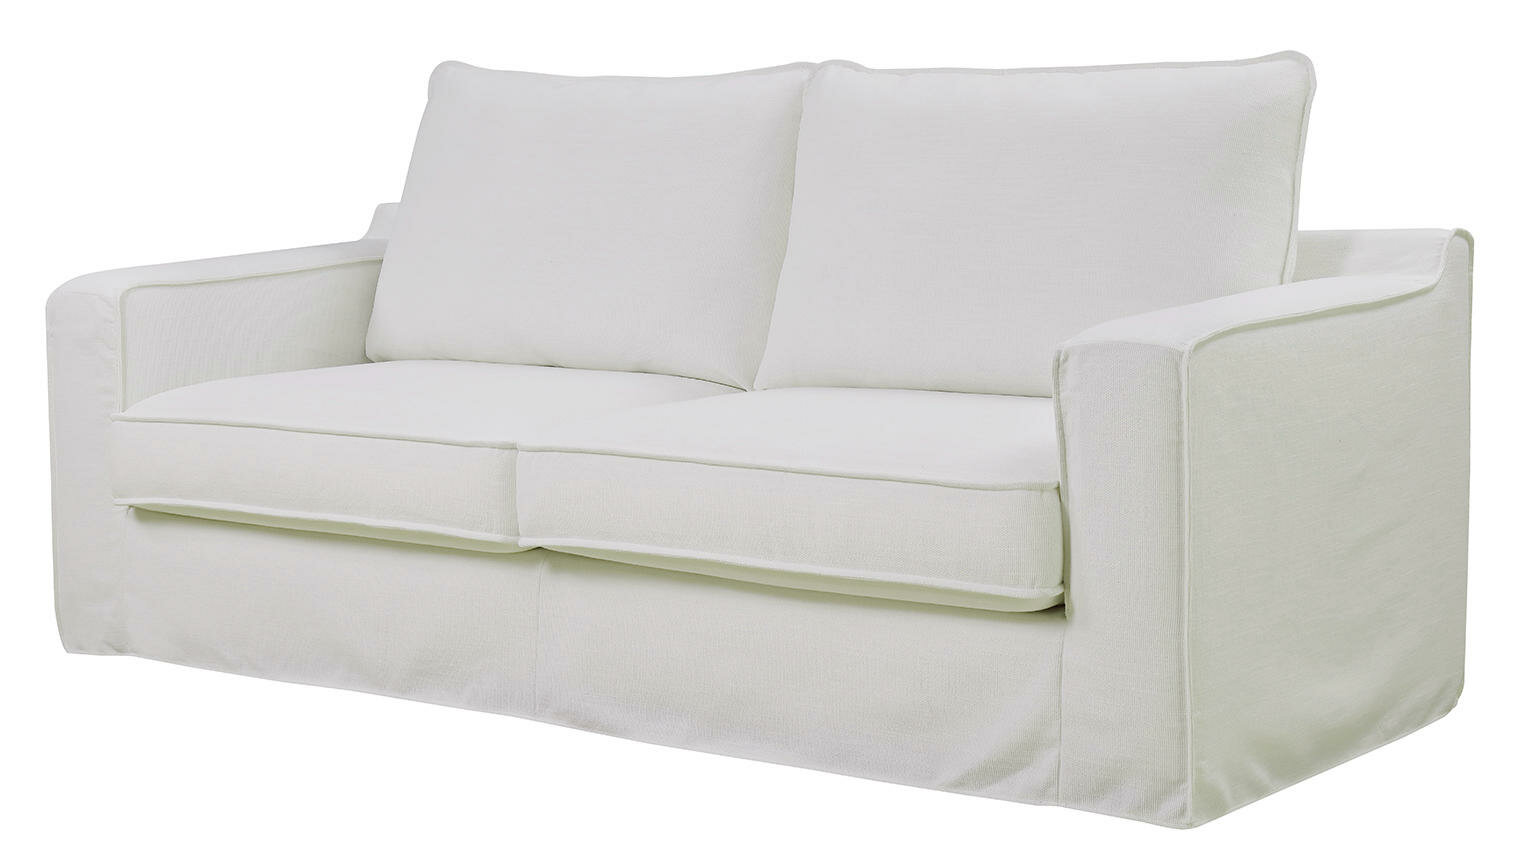 stowe sofas oyster sofa slipcover bay item gray brands lexington ws items couches home detail type